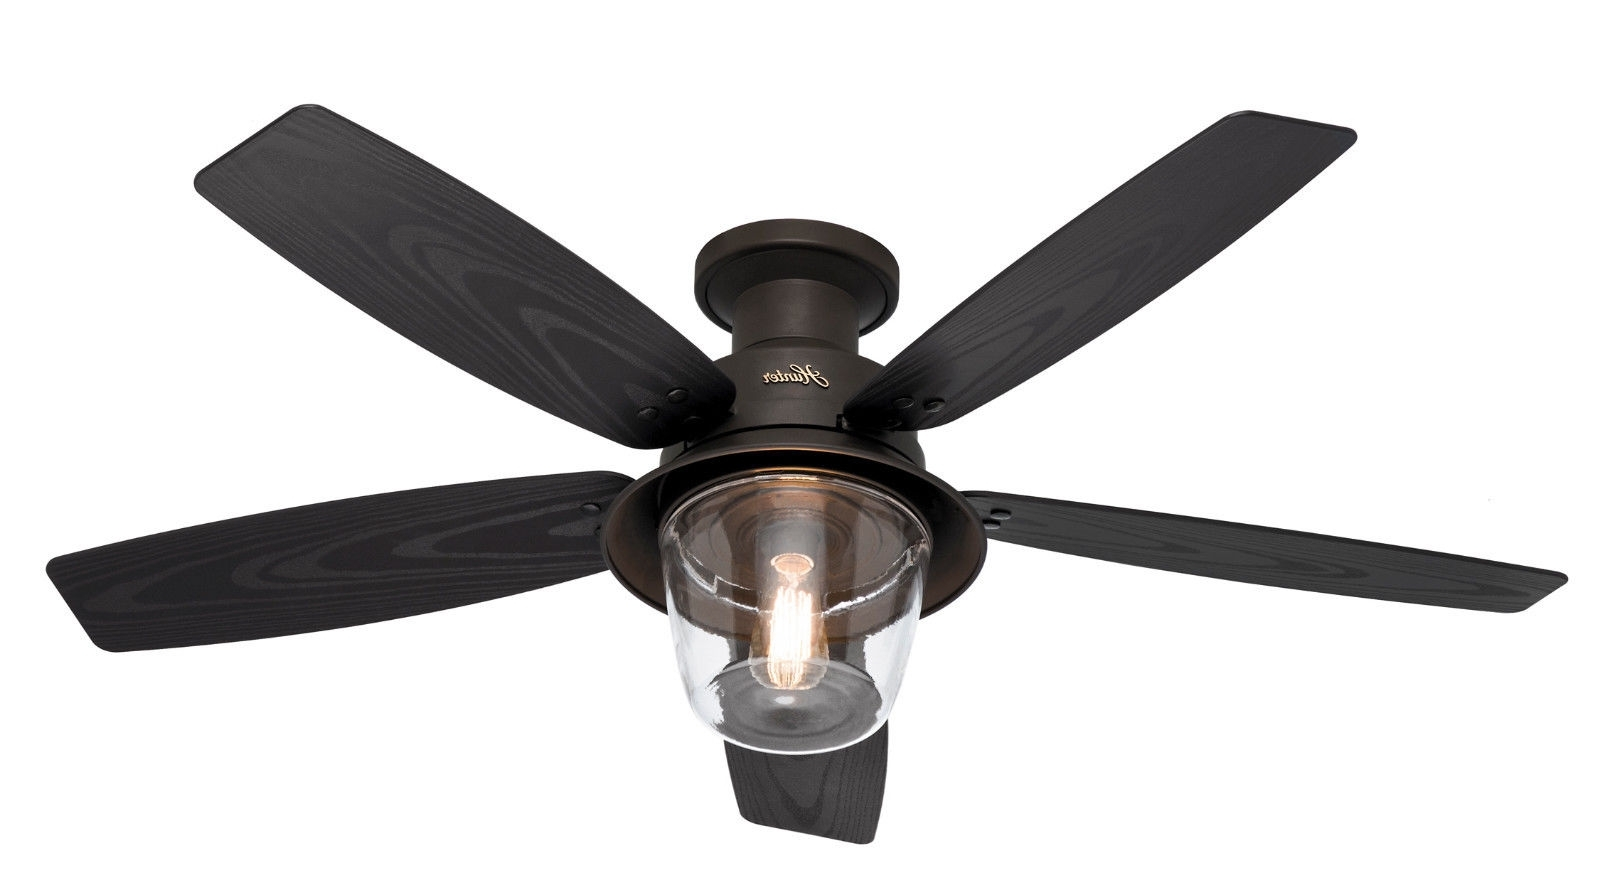 Best And Newest Ceiling Fan: Breathtaking Black Industrial Ceiling Fan Ideas Within Industrial Outdoor Ceiling Fans (View 2 of 20)